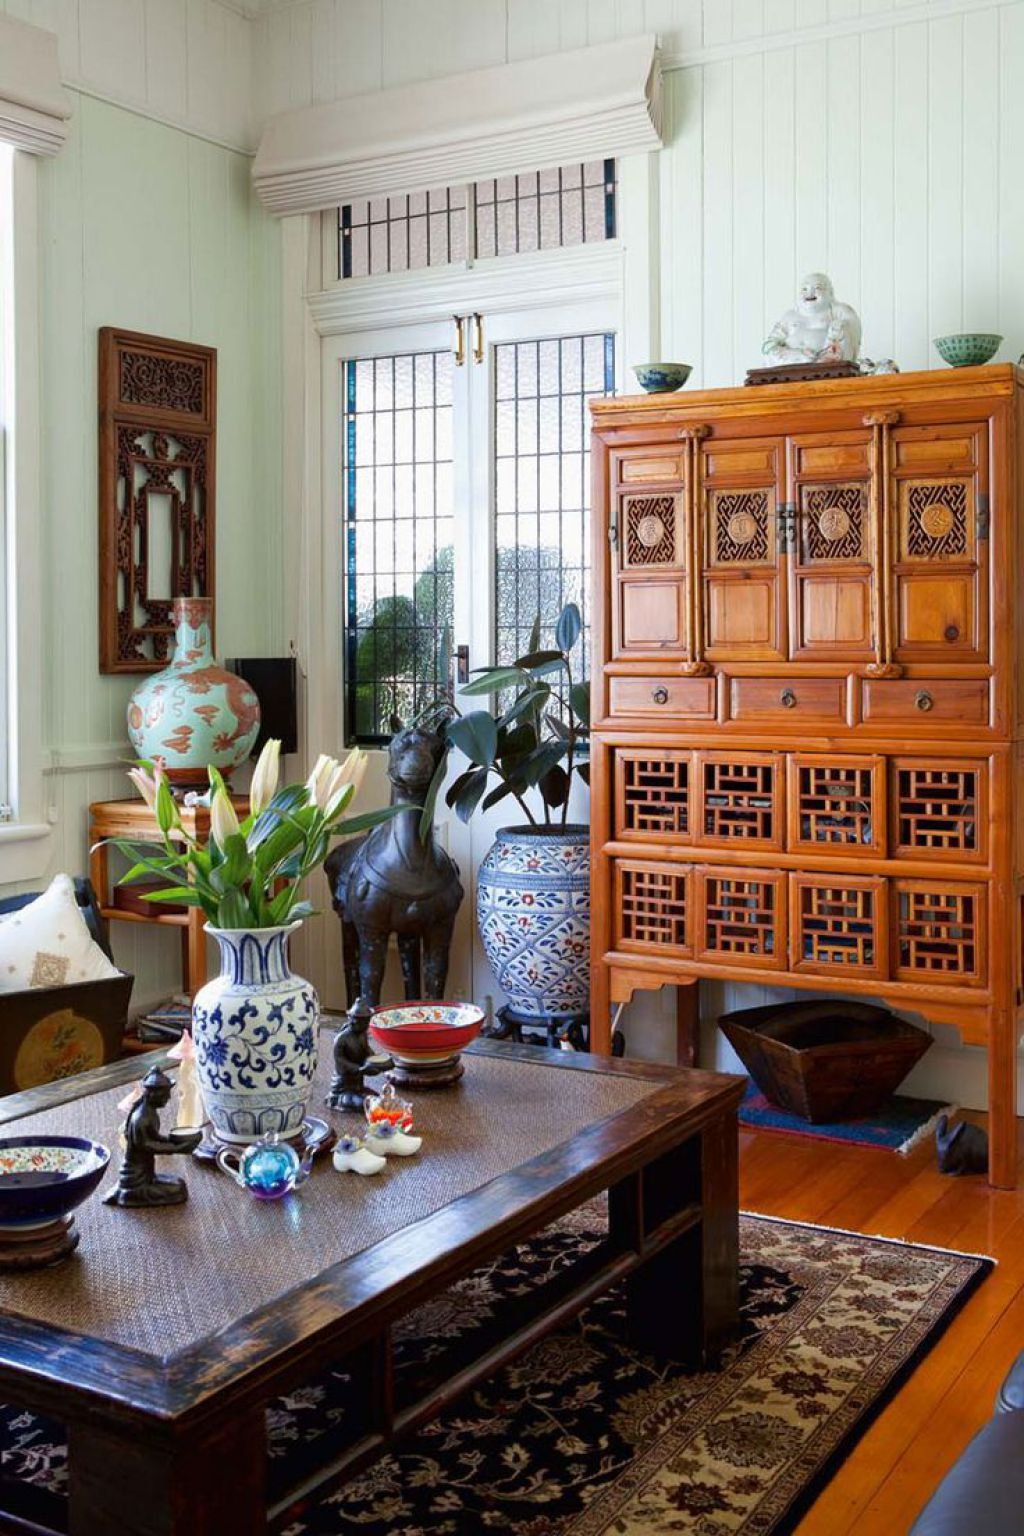 Asian Style Furniture Create A Natural And Balanced Interior With